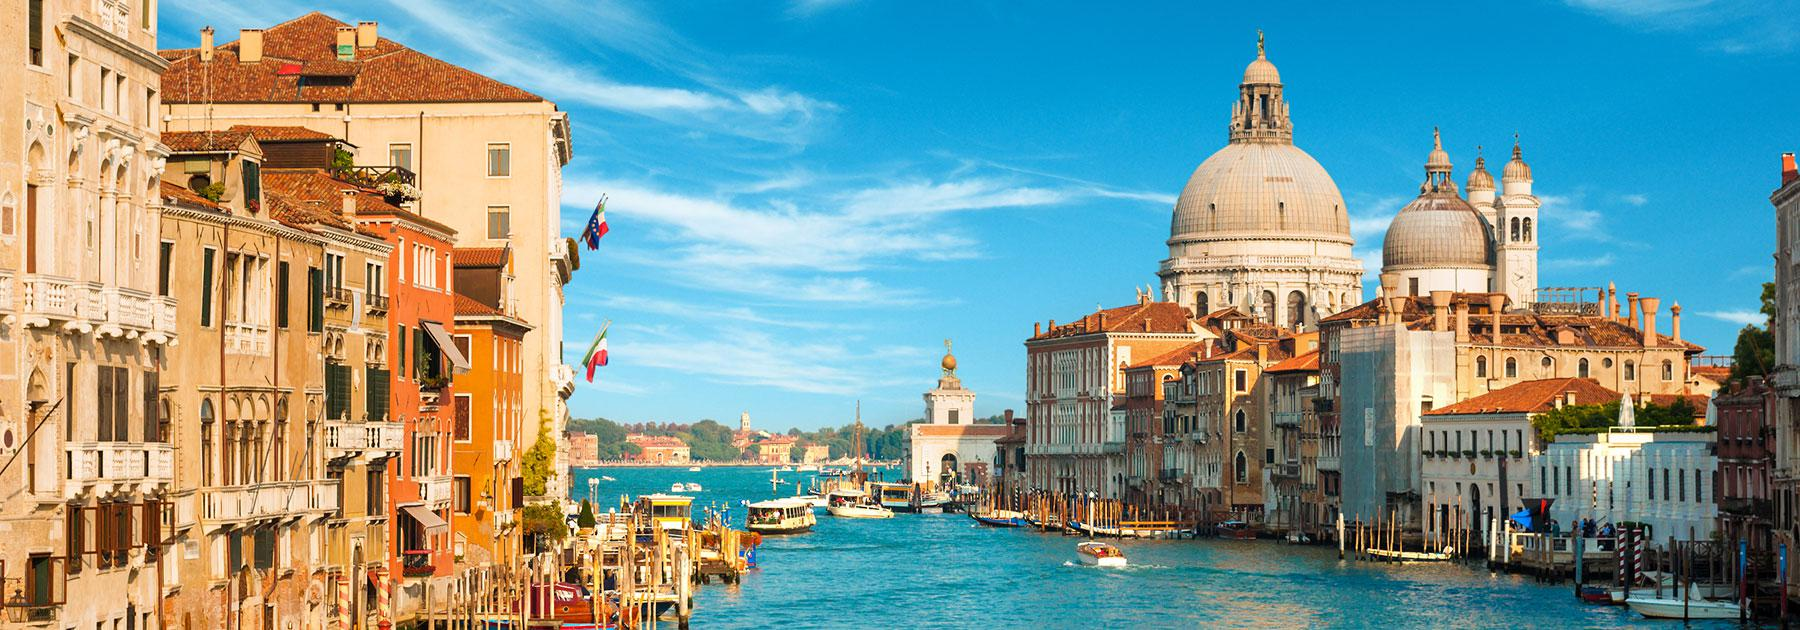 Istanbul Hd Wallpaper Italy Vacation Packages Italy Trips With Airfare From Go